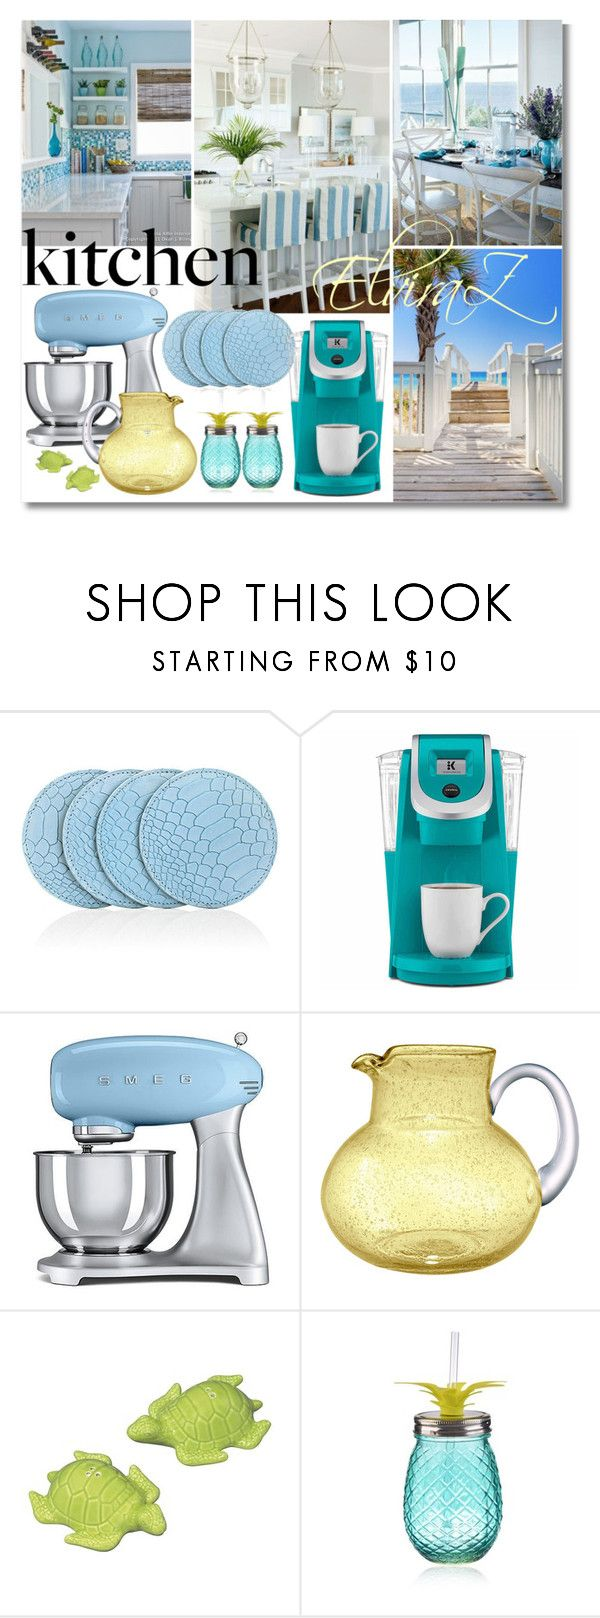 """Dream Kitchen"" by elza76 on Polyvore featuring interior, interiors, interior design, дом, home decor, interior decorating, Barneys New York, Keurig, Smeg и Iris"